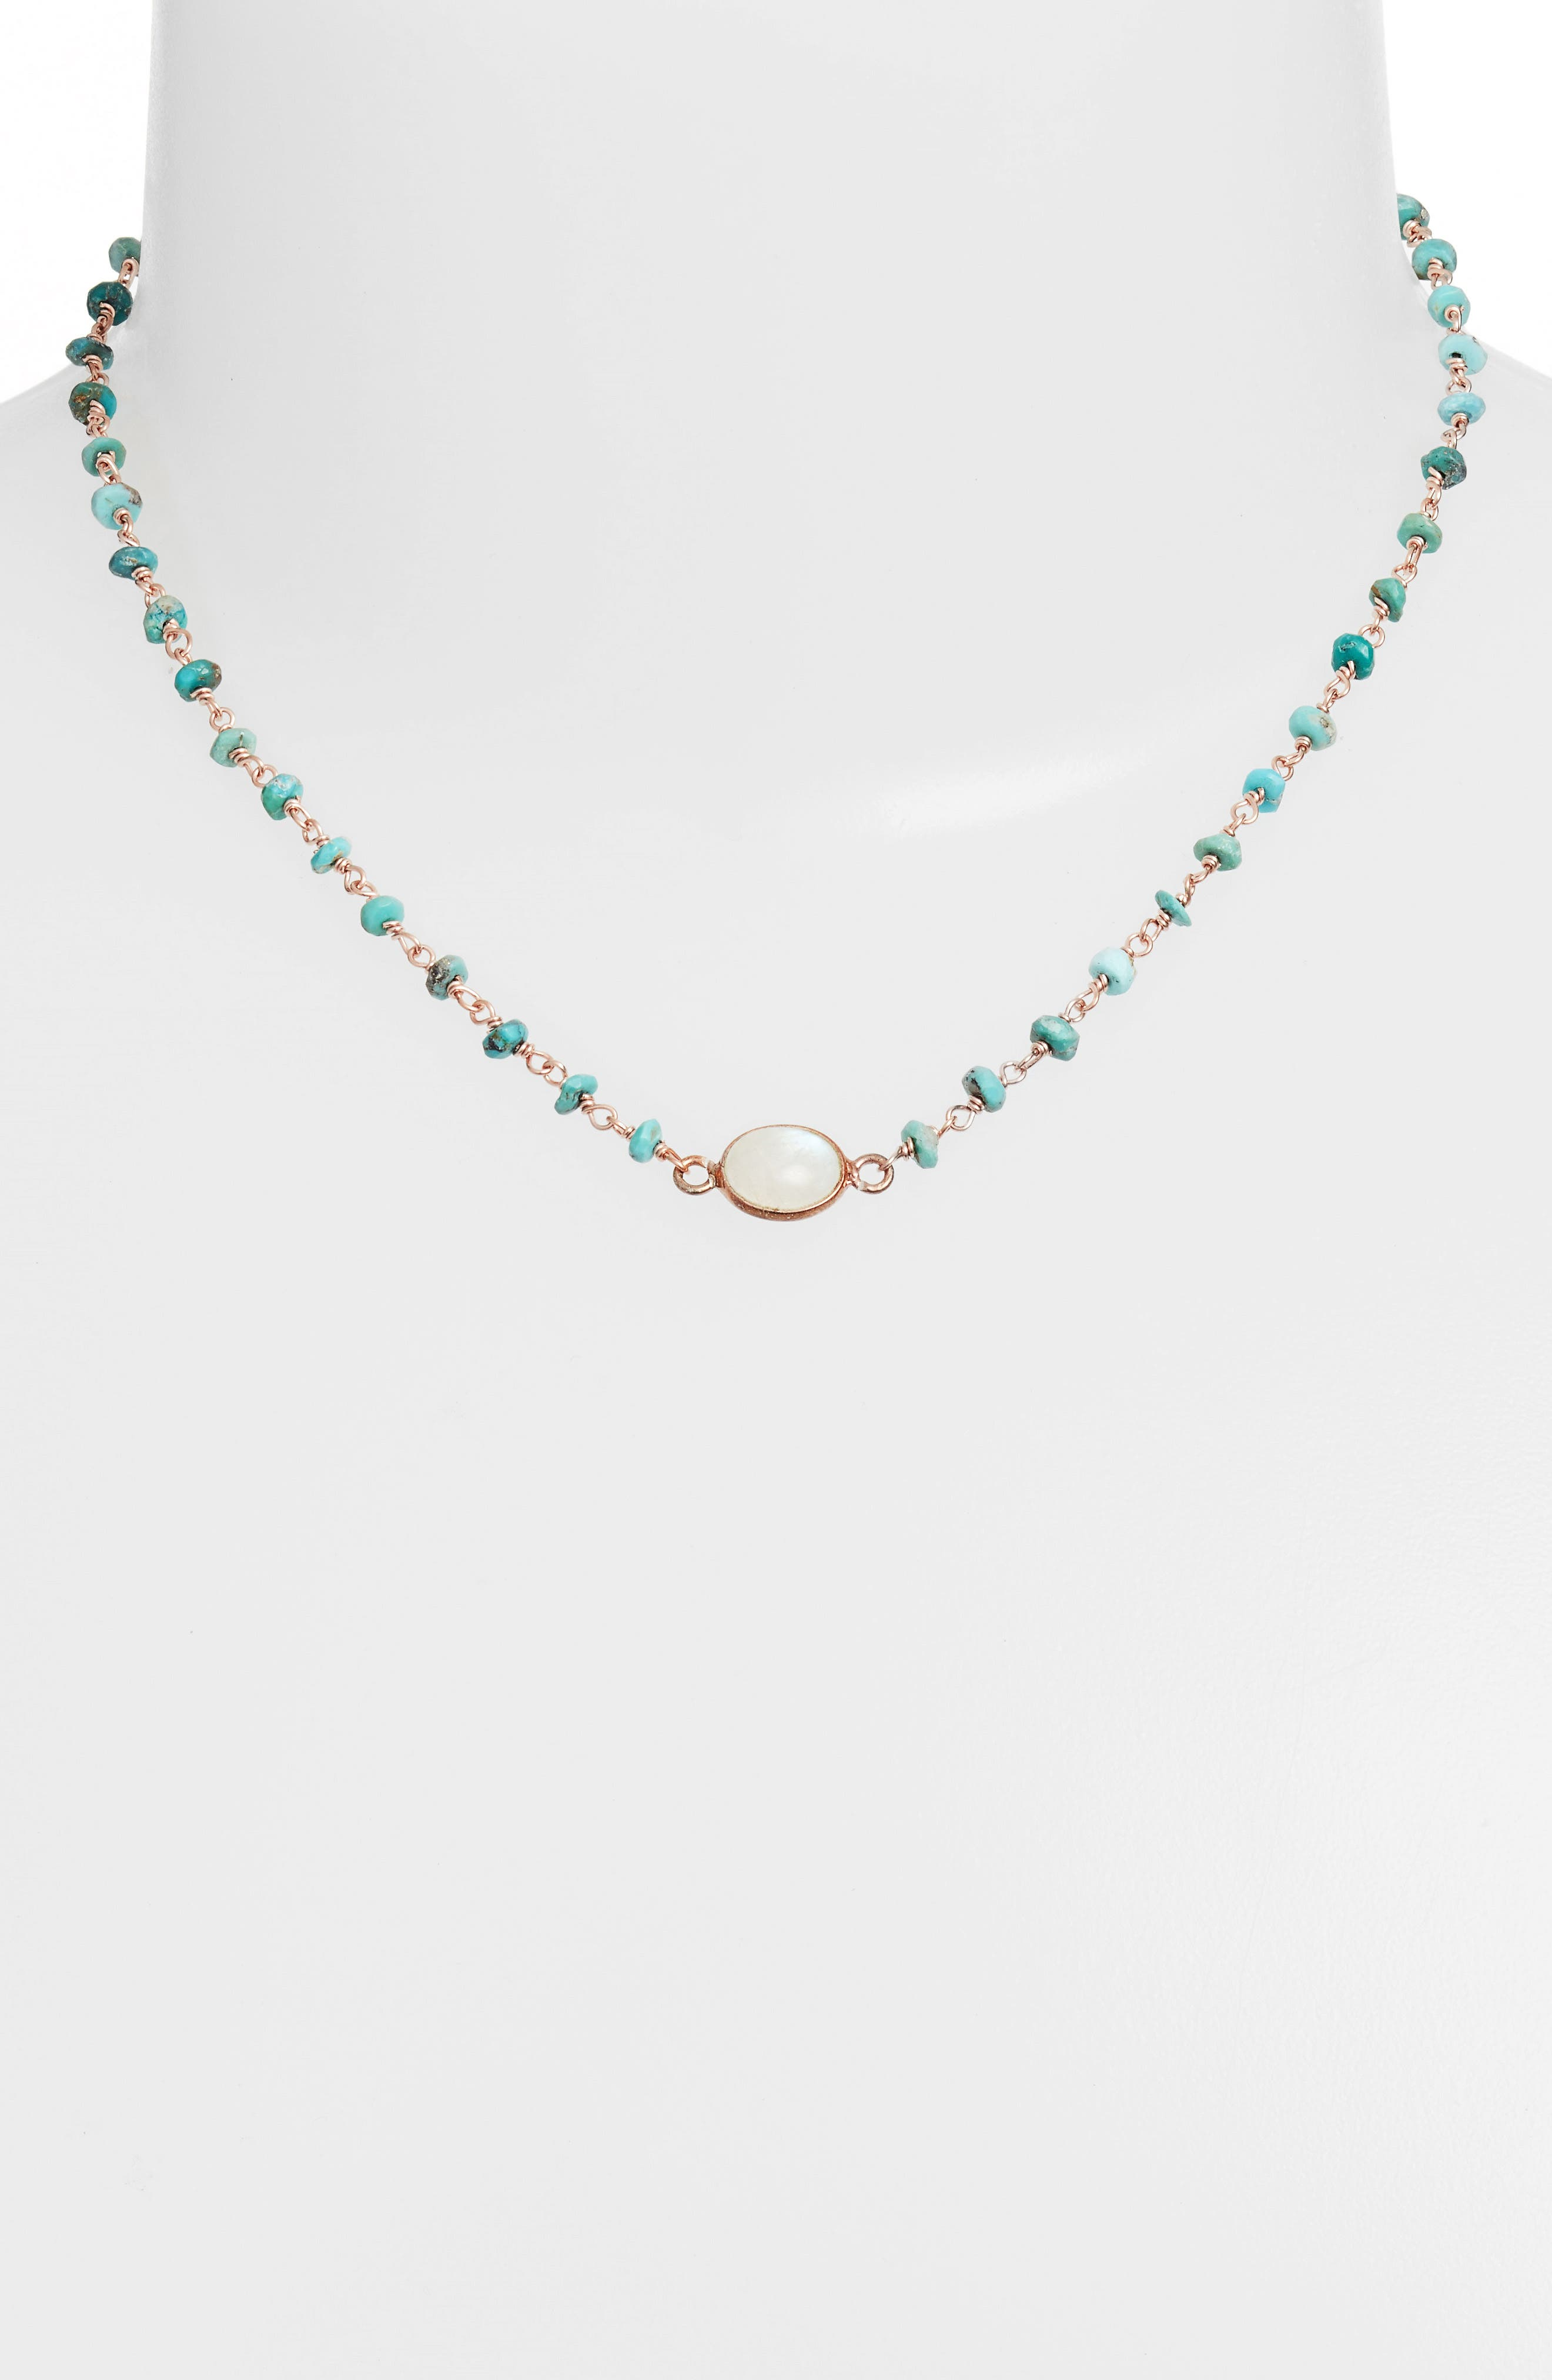 Semiprecious Stone Collar Necklace,                             Alternate thumbnail 2, color,                             Turquoise/ Moonstone